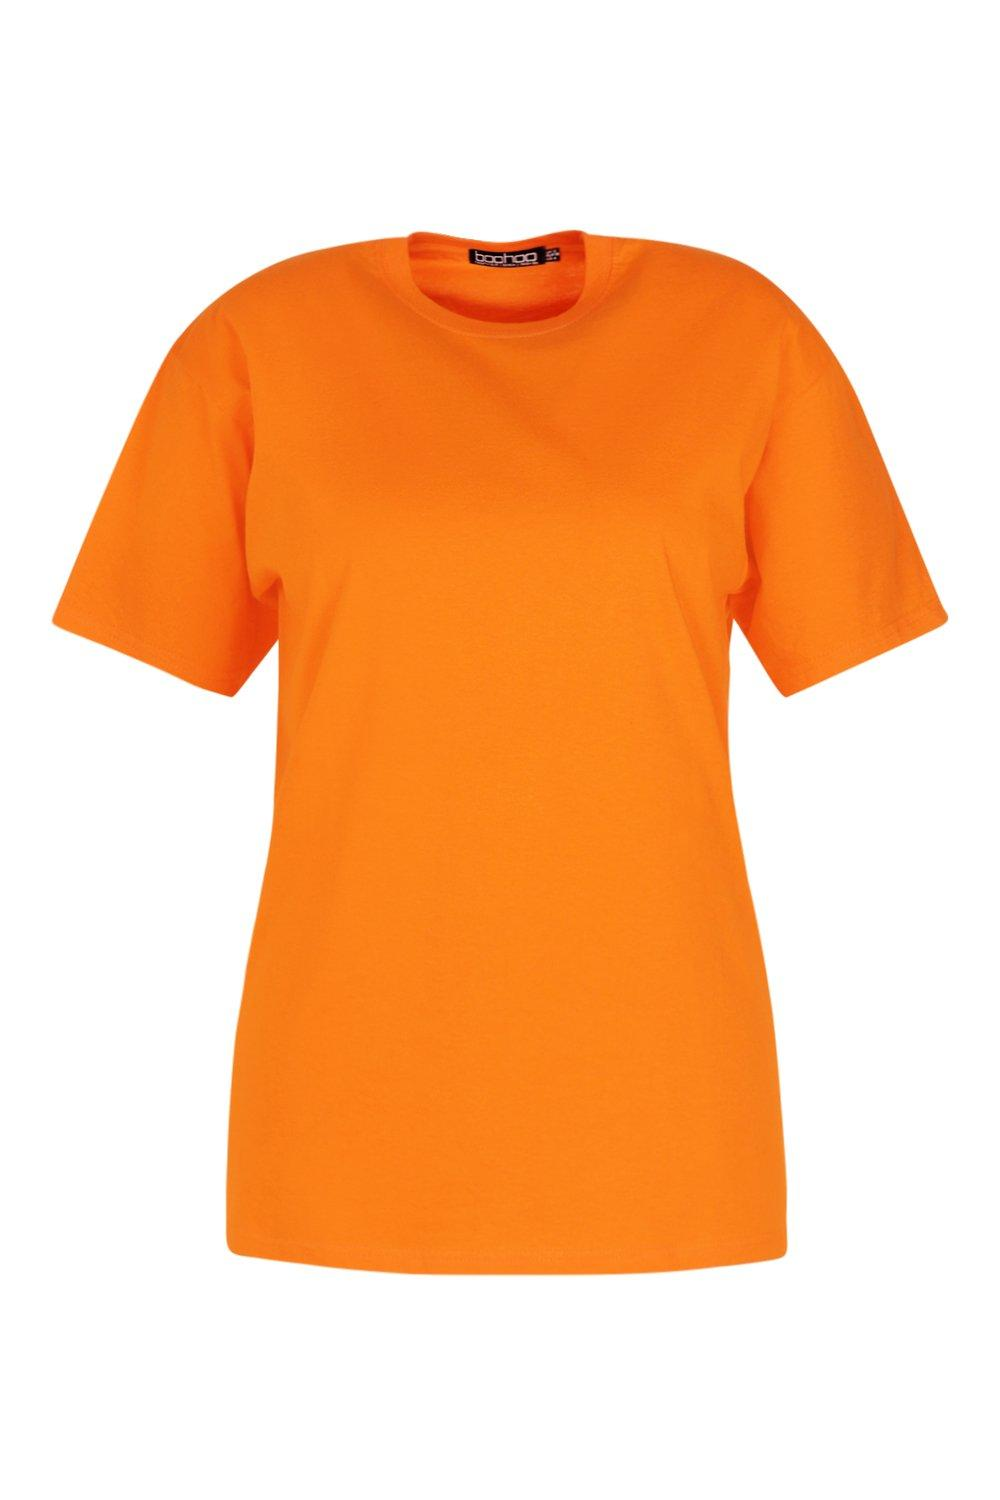 orange Oversized Oversized Boyfriend Plus Plus Plus Tee Oversized Tee orange Tee Boyfriend orange Boyfriend 8SOqXvp